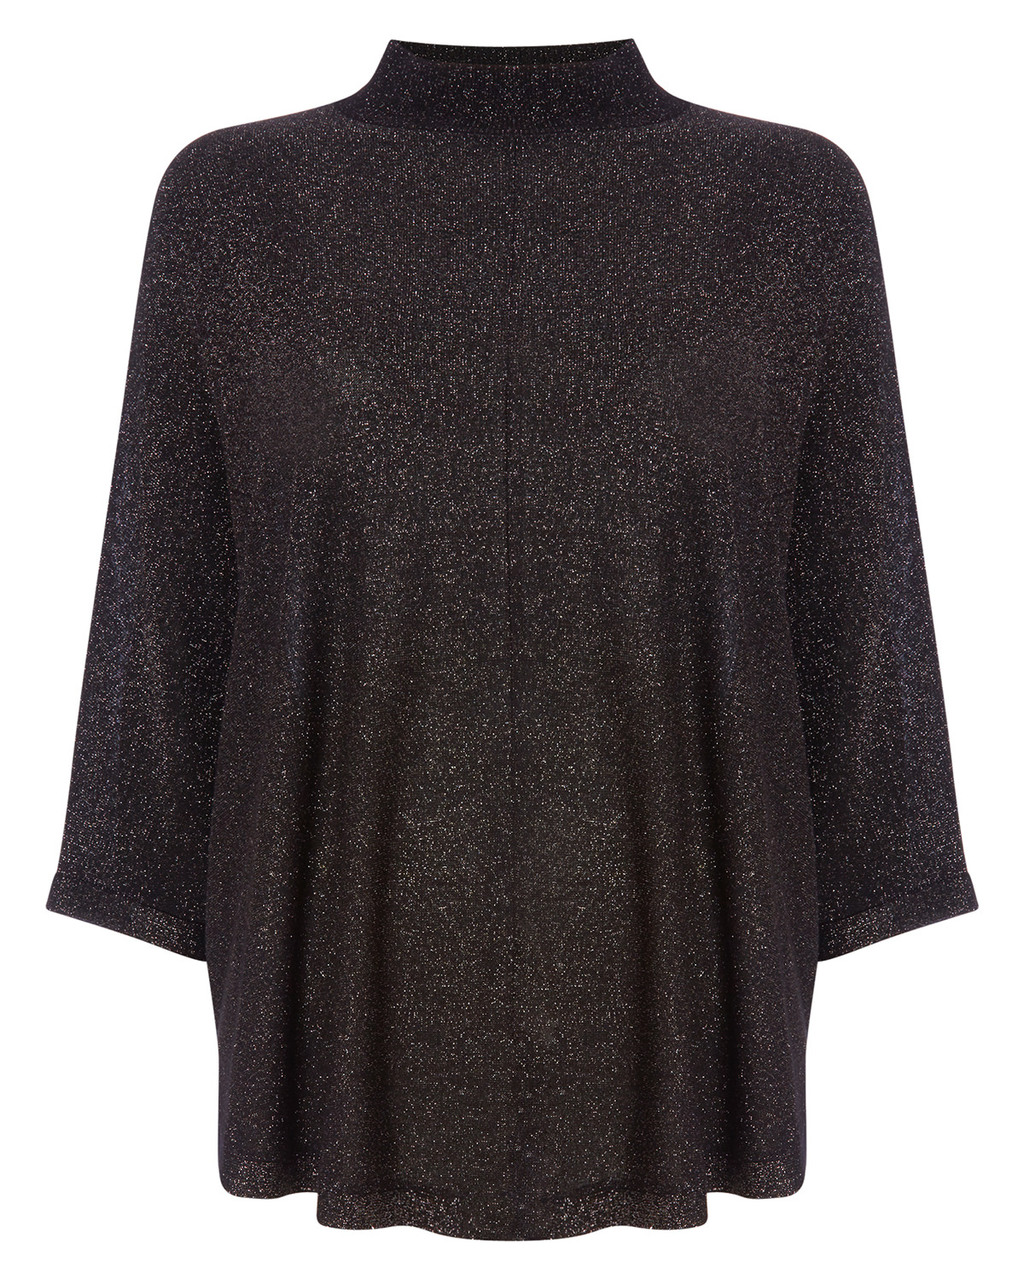 Shimmer Melany Poncho - pattern: plain; length: below the bottom; fit: loose; style: poncho/blanket; collar: high neck; predominant colour: black; occasions: casual; fibres: polyester/polyamide - 100%; sleeve length: 3/4 length; sleeve style: standard; texture group: knits/crochet; collar break: high; pattern type: knitted - fine stitch; season: a/w 2015; wardrobe: highlight